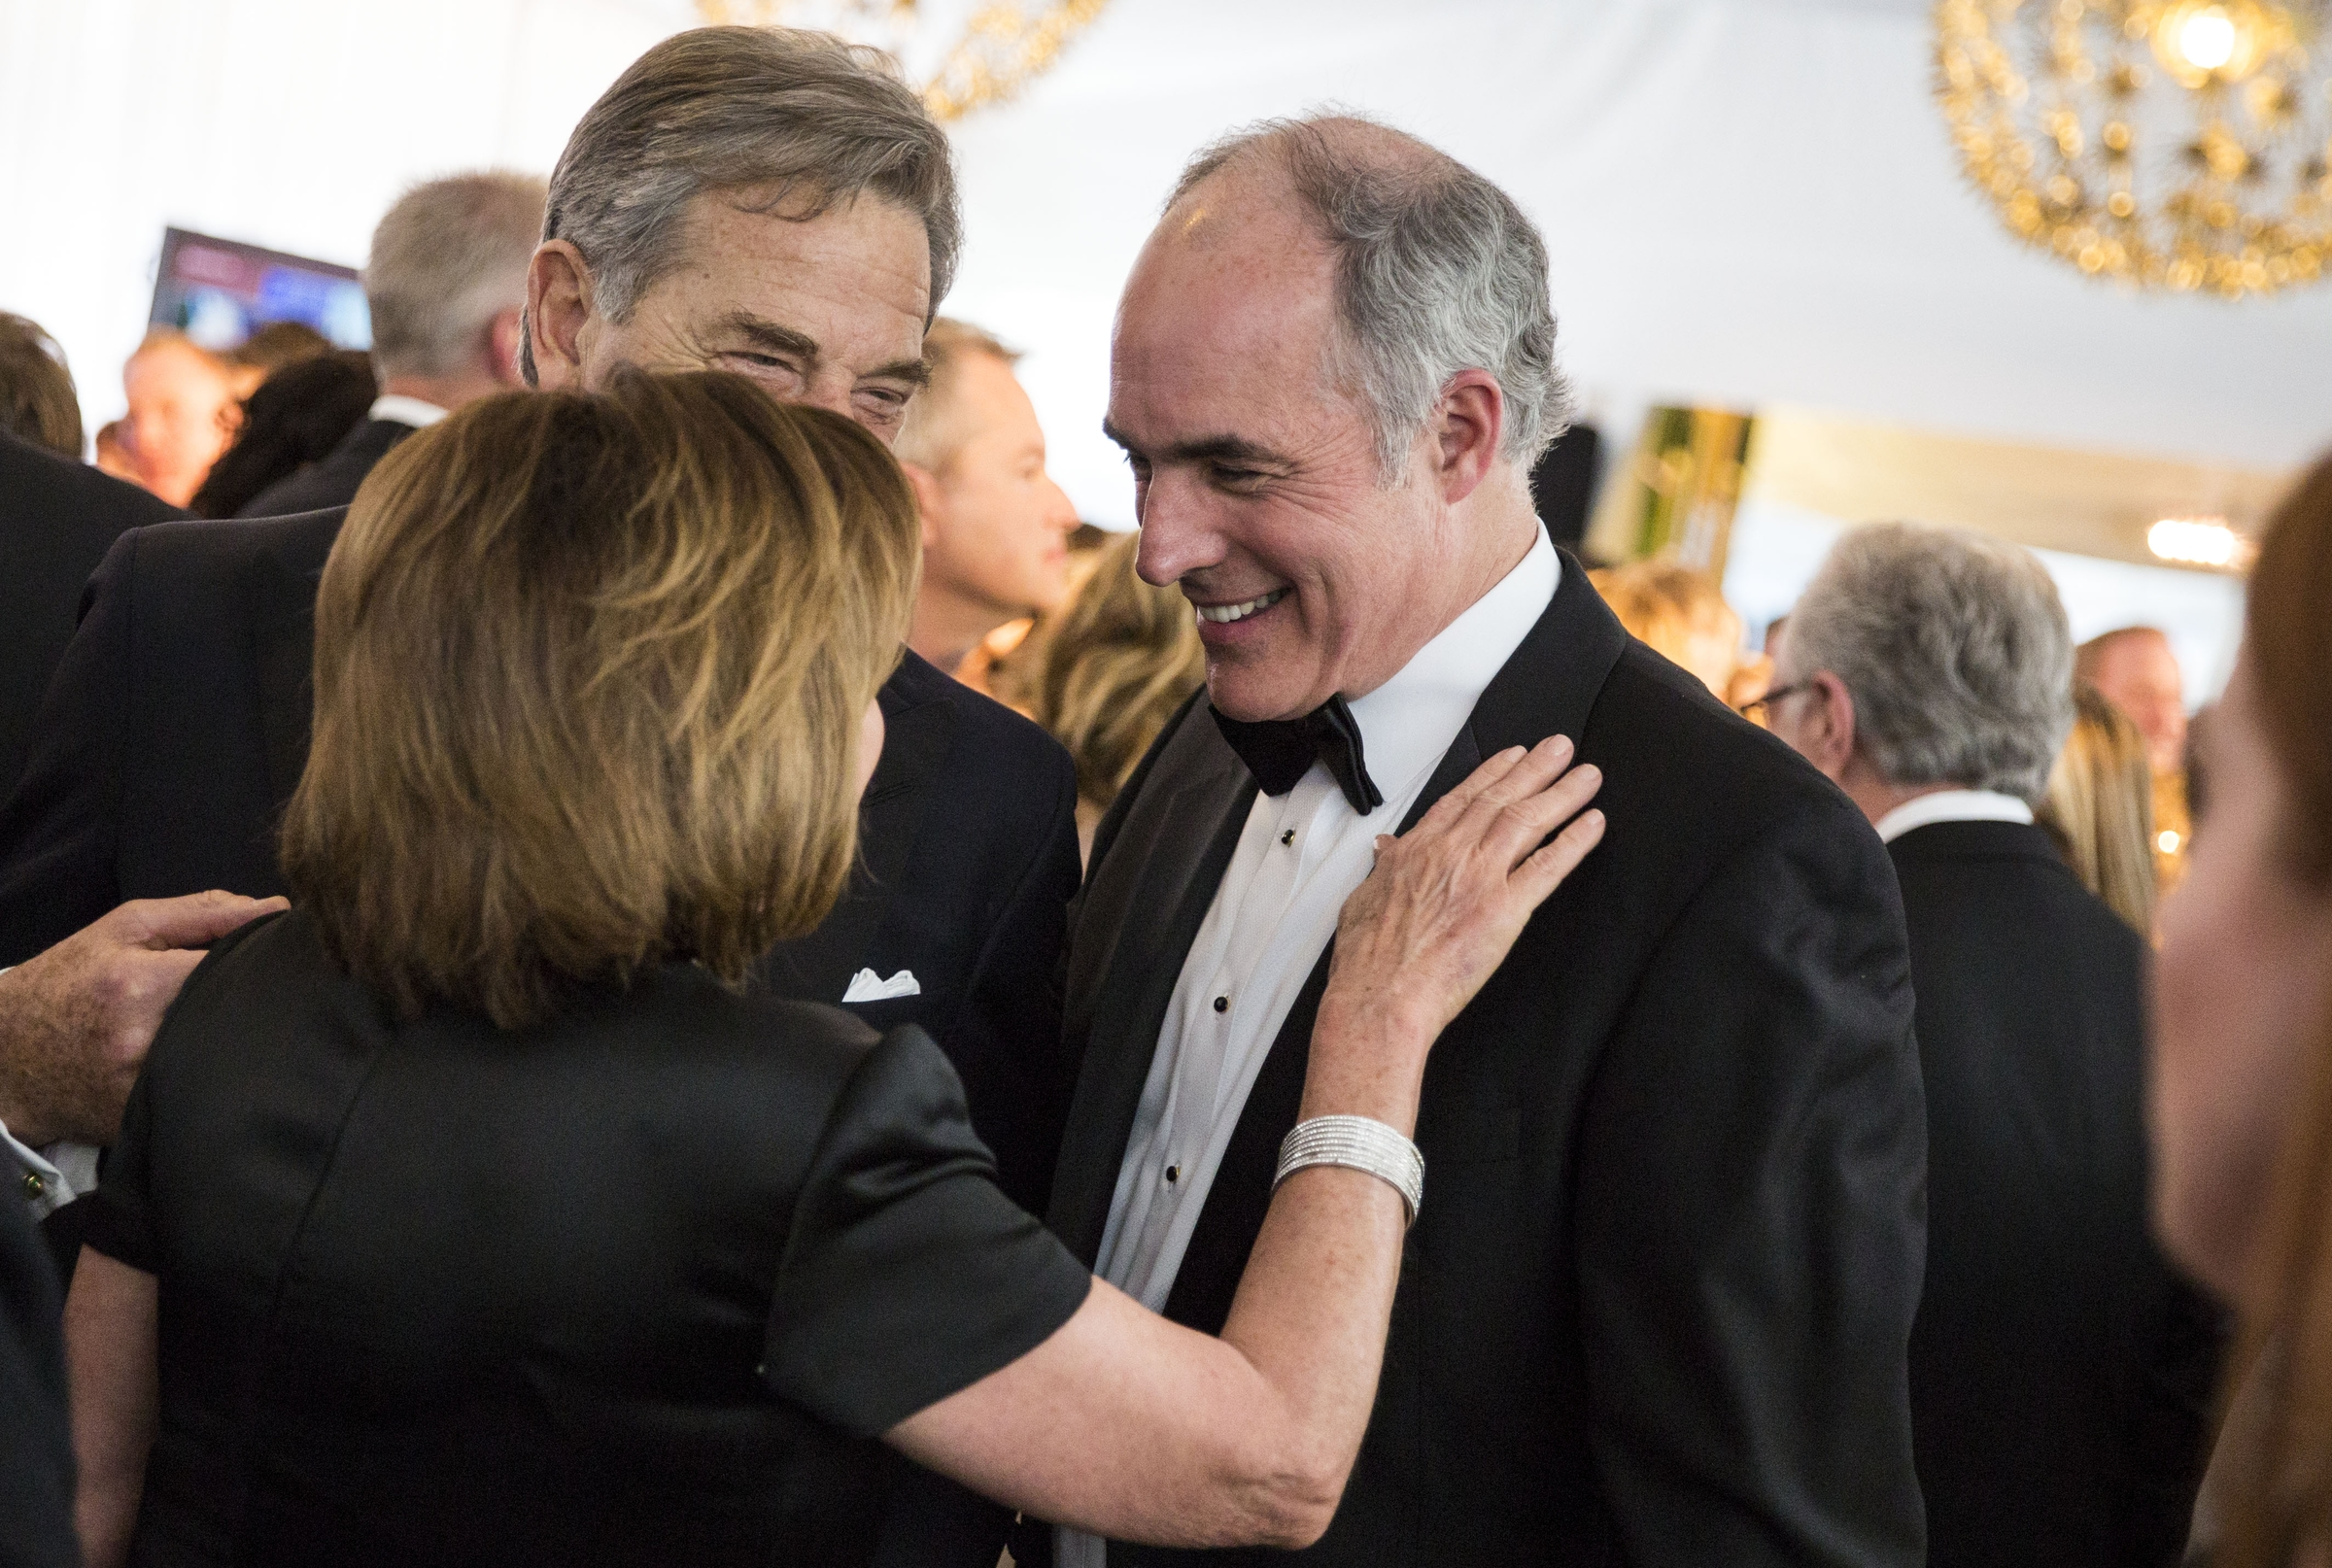 House Minority Leader Nancy Pelosi of California speaks with Pennsylvania Sen. Bob Casey, right, and her husband, Paul, at an Atlantic / CBS News pre-party on Saturday. (Photo By Al Drago/CQ Roll Call)